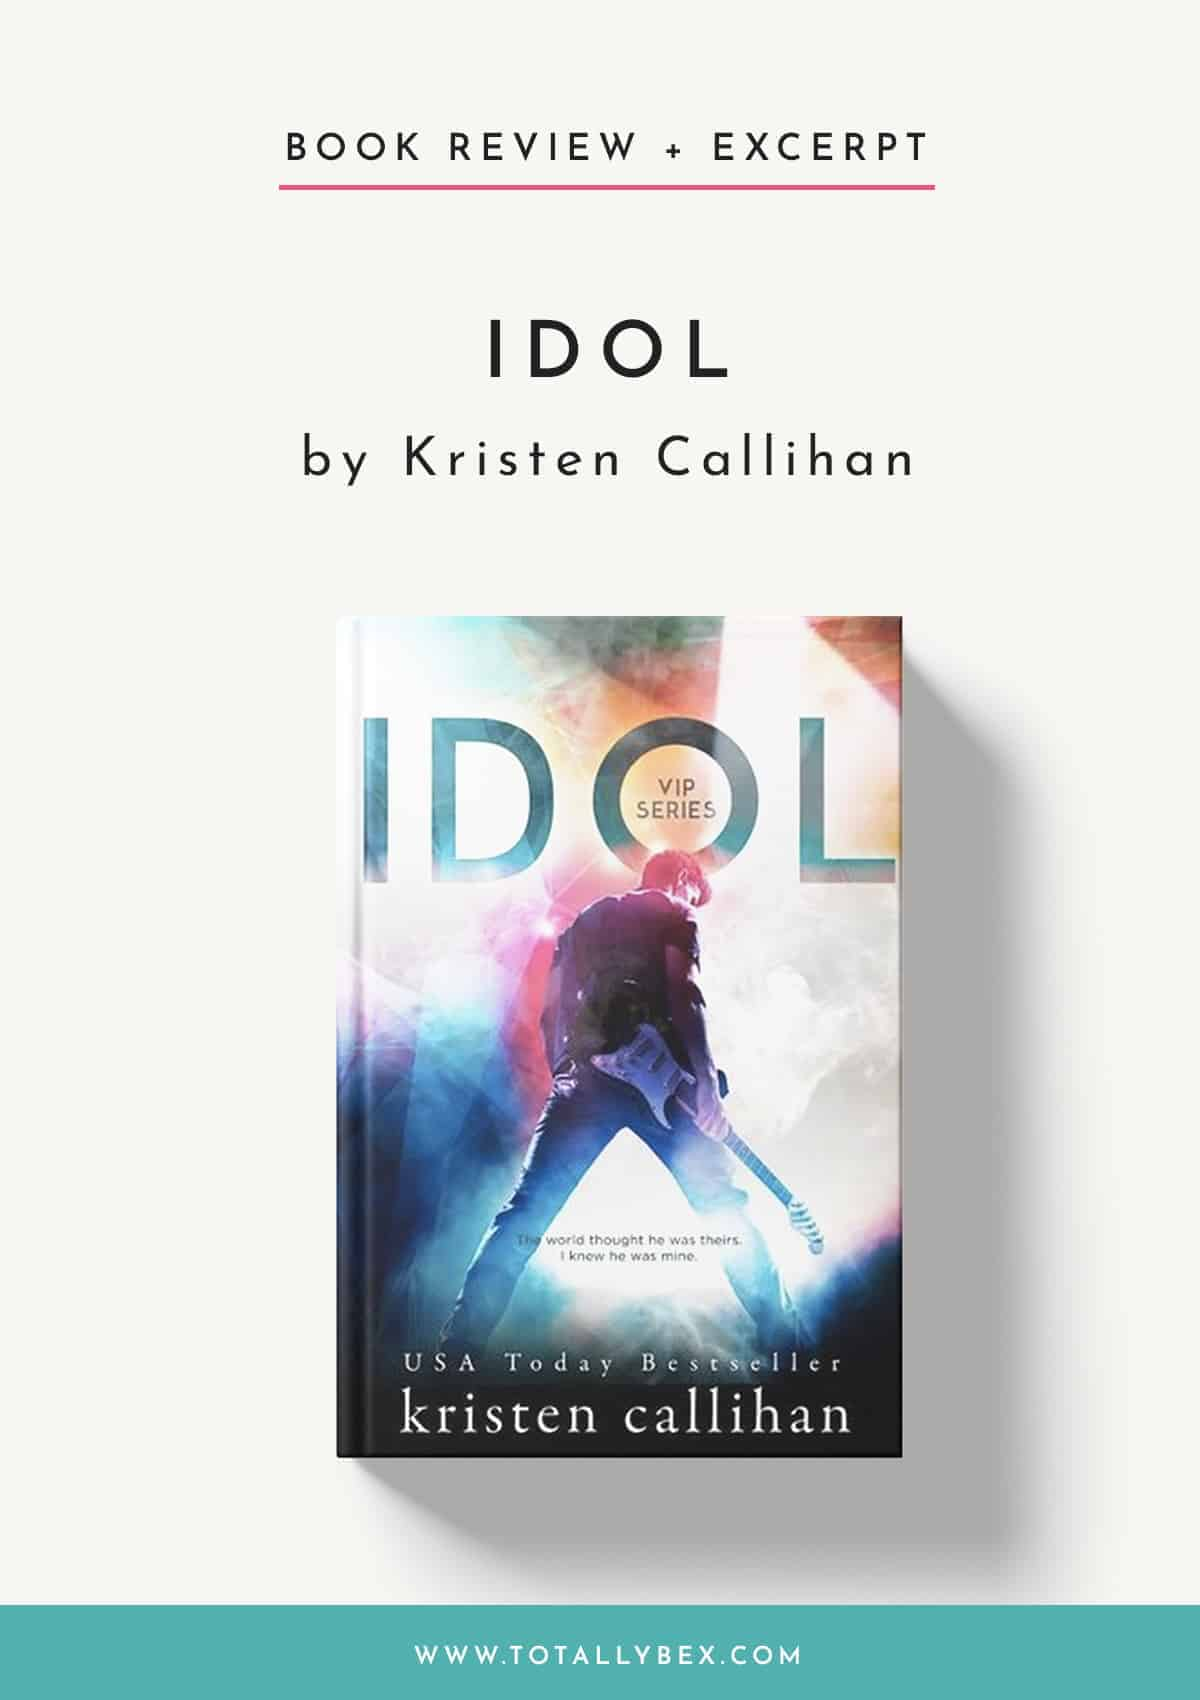 Idol by Kristen Callihan-Book Review + Excerpt